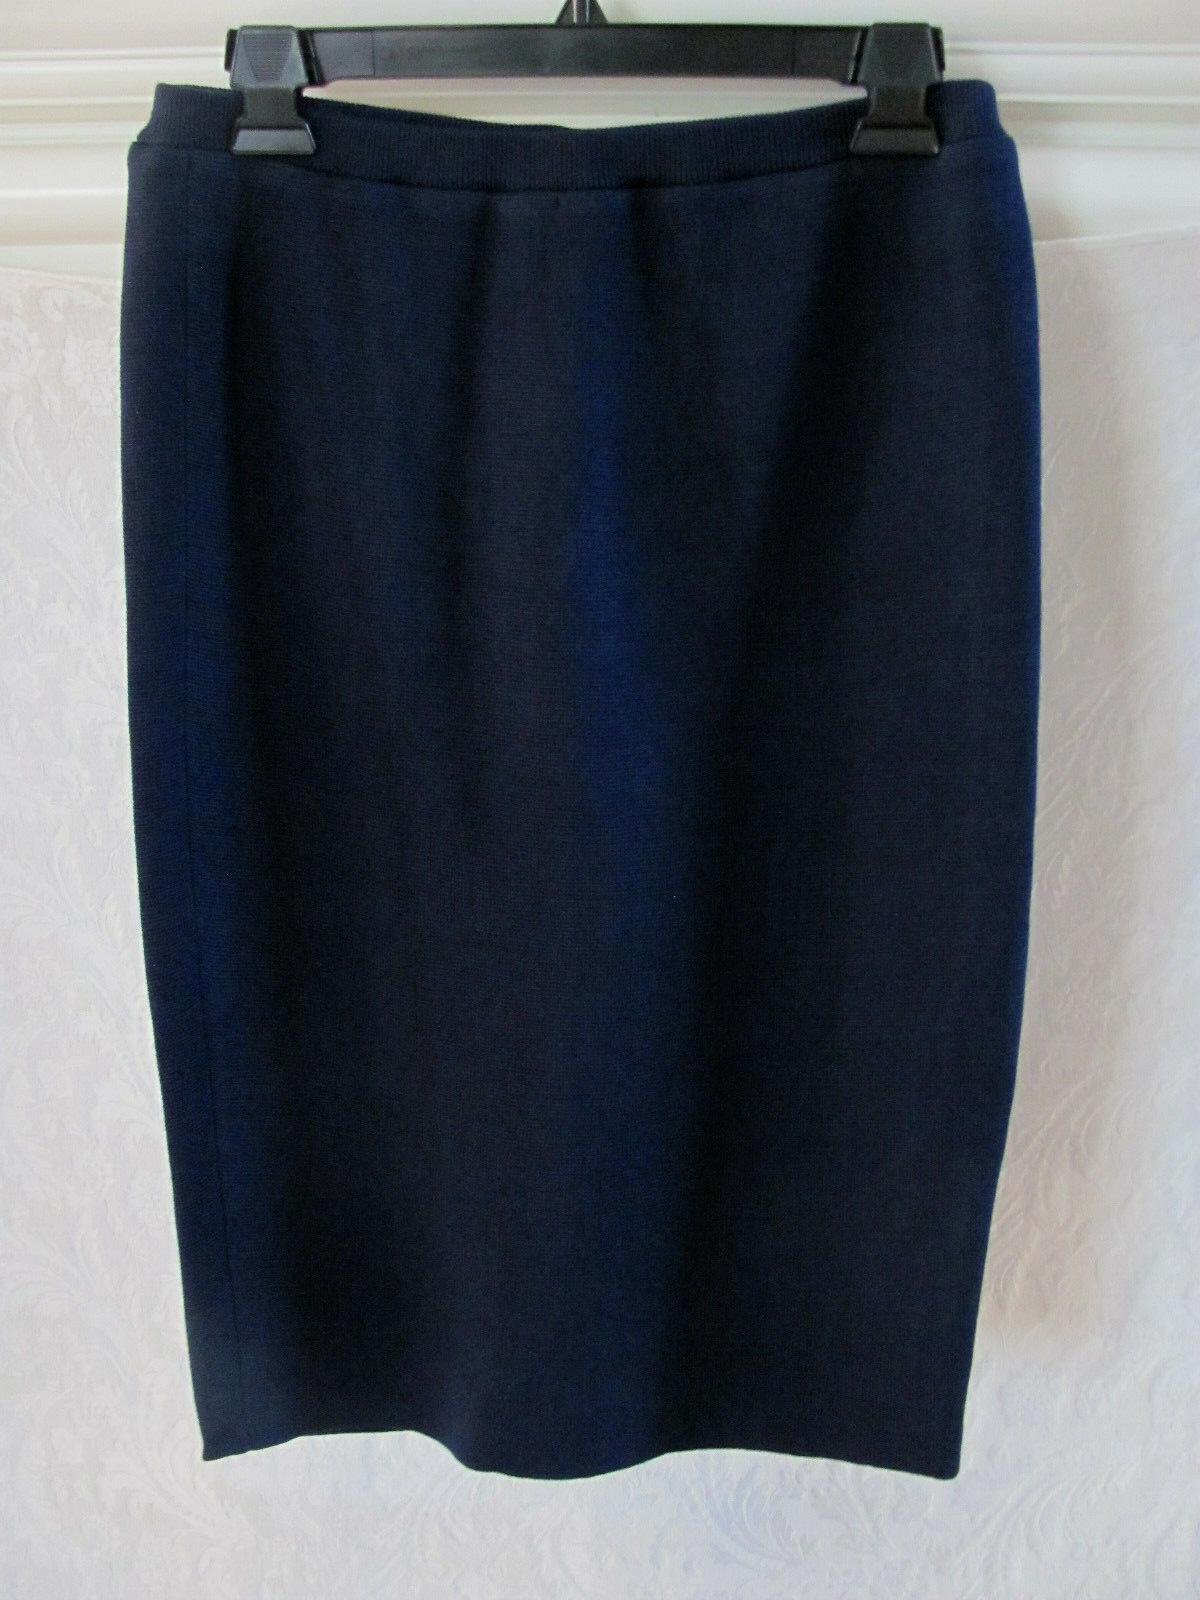 Eileen Fisher Pencil Knee Length Skirt- Silk Cotton -Midnight-Size XXS-NWT  218